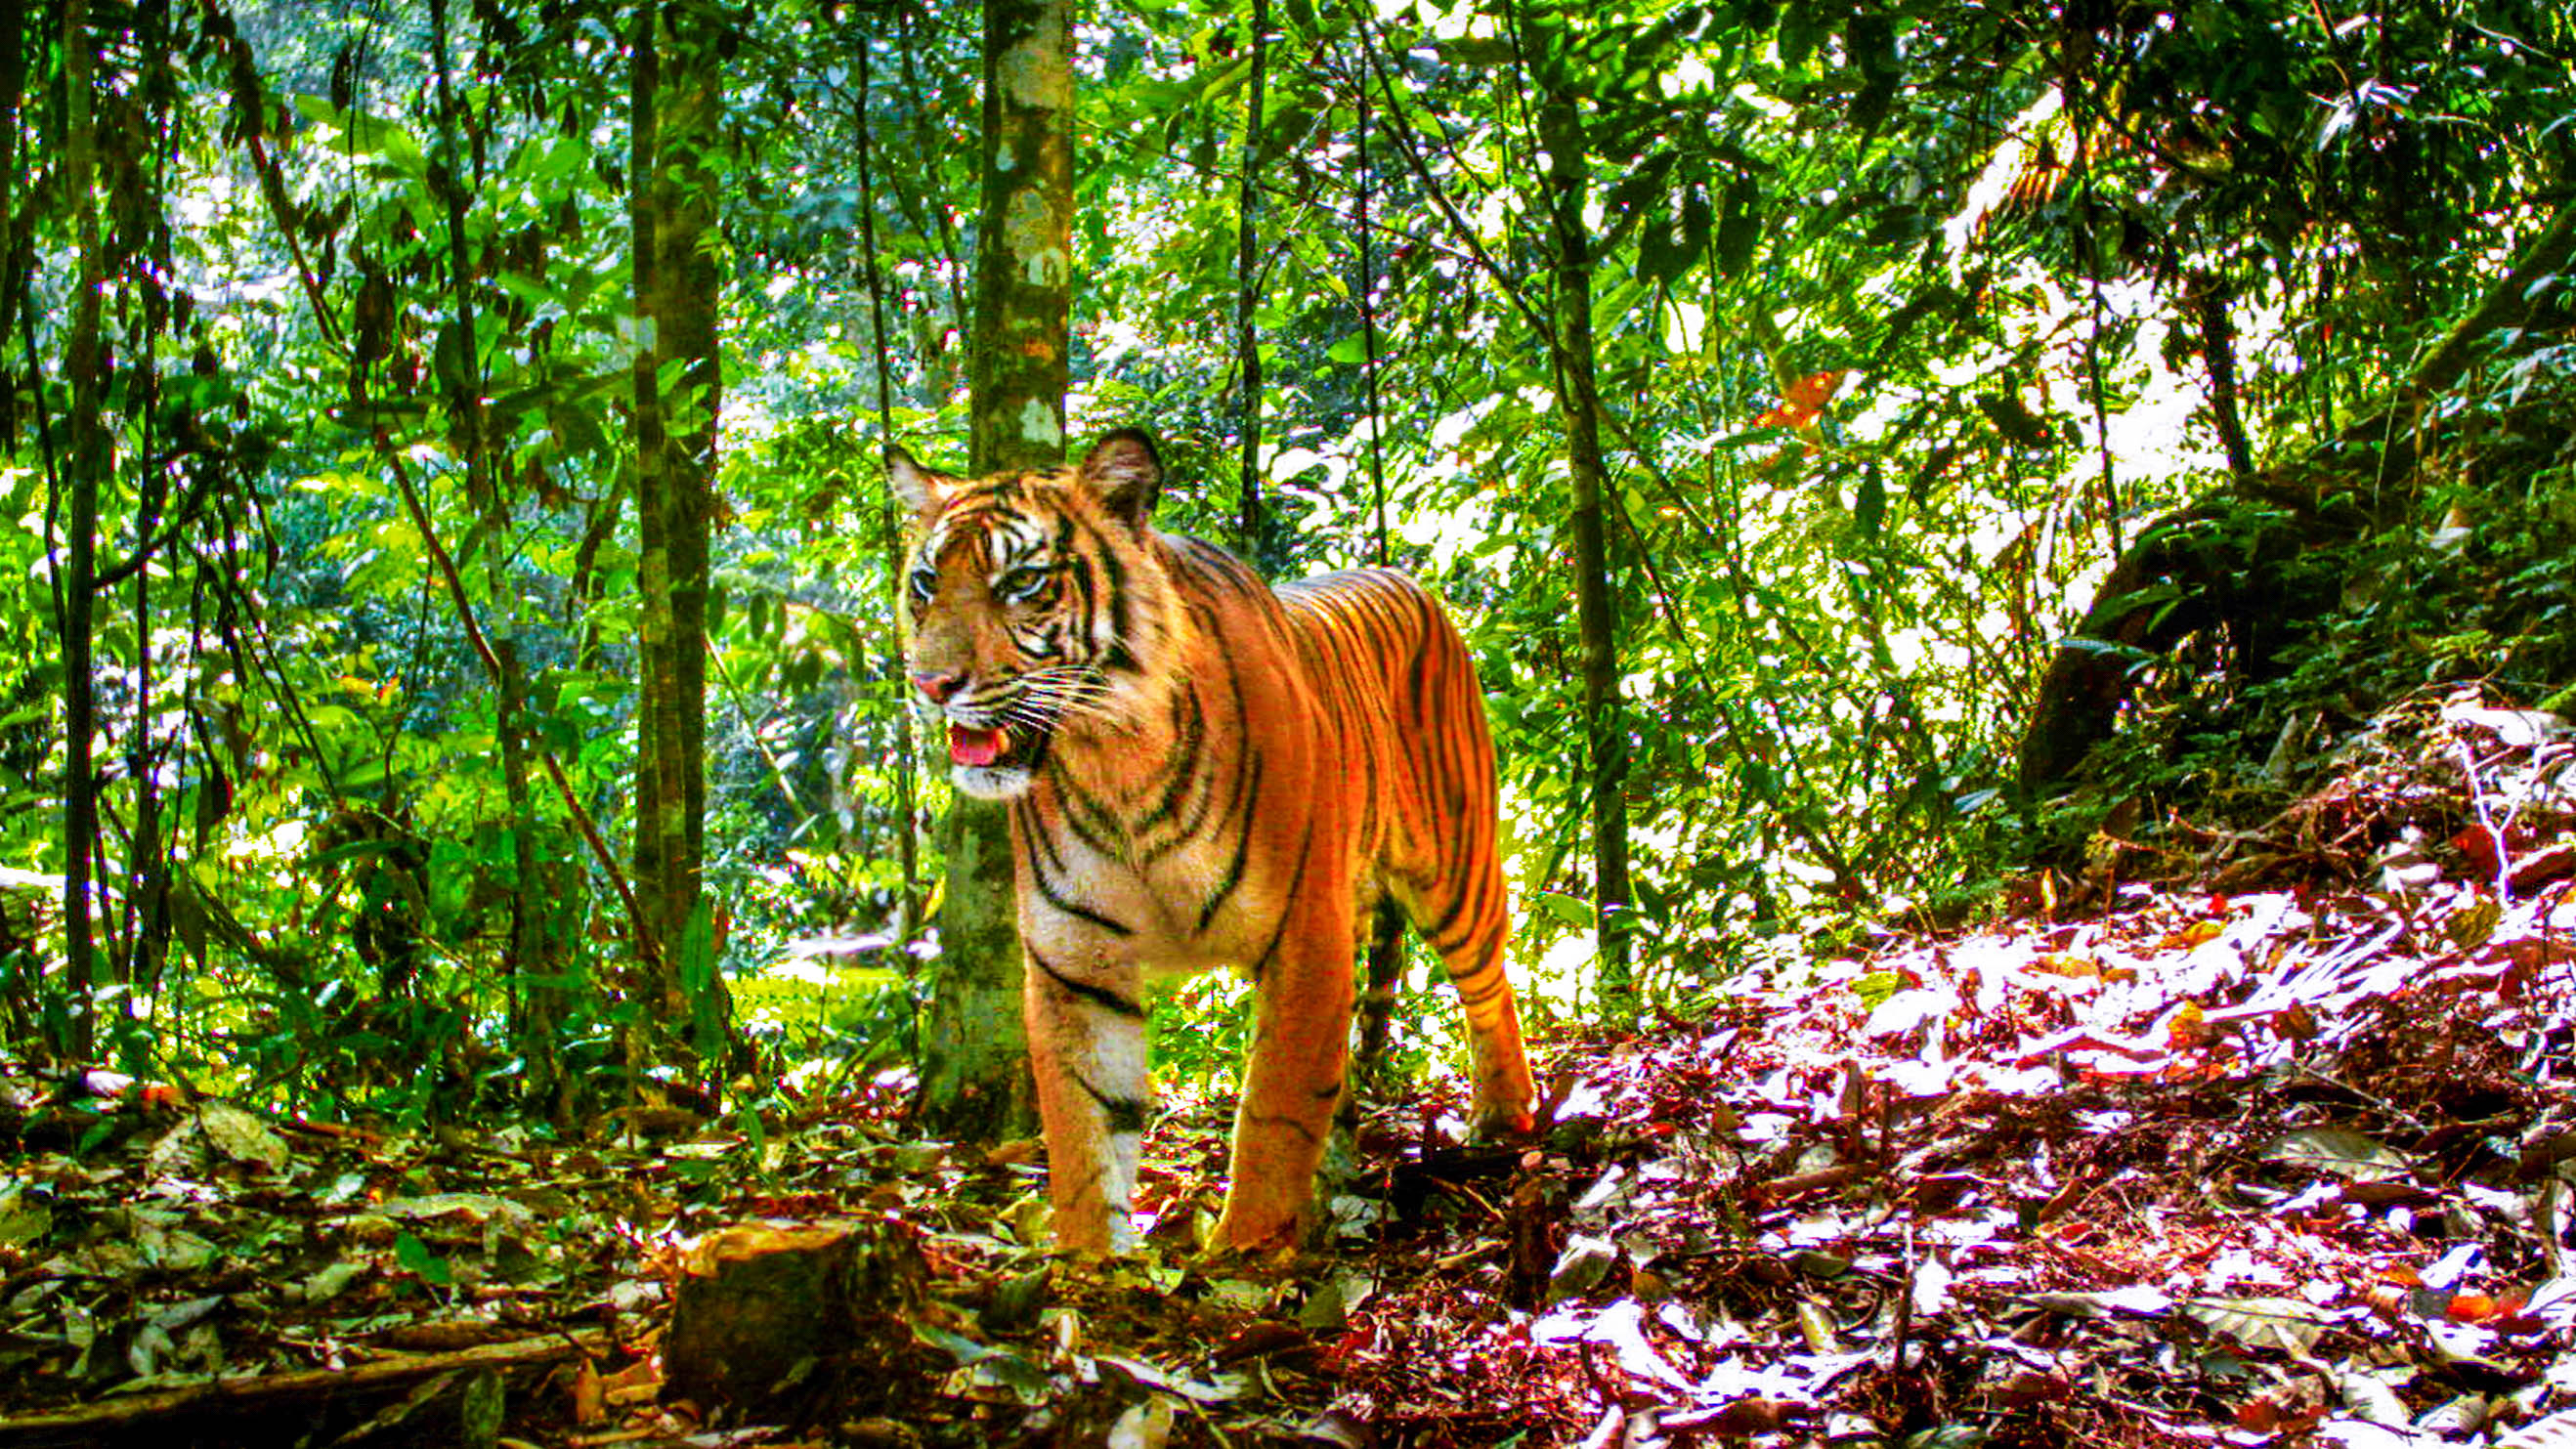 Already-endangered tigers in the Sumatran jungle could face steep population declines if their jungle habitats undergo any more deforestation.